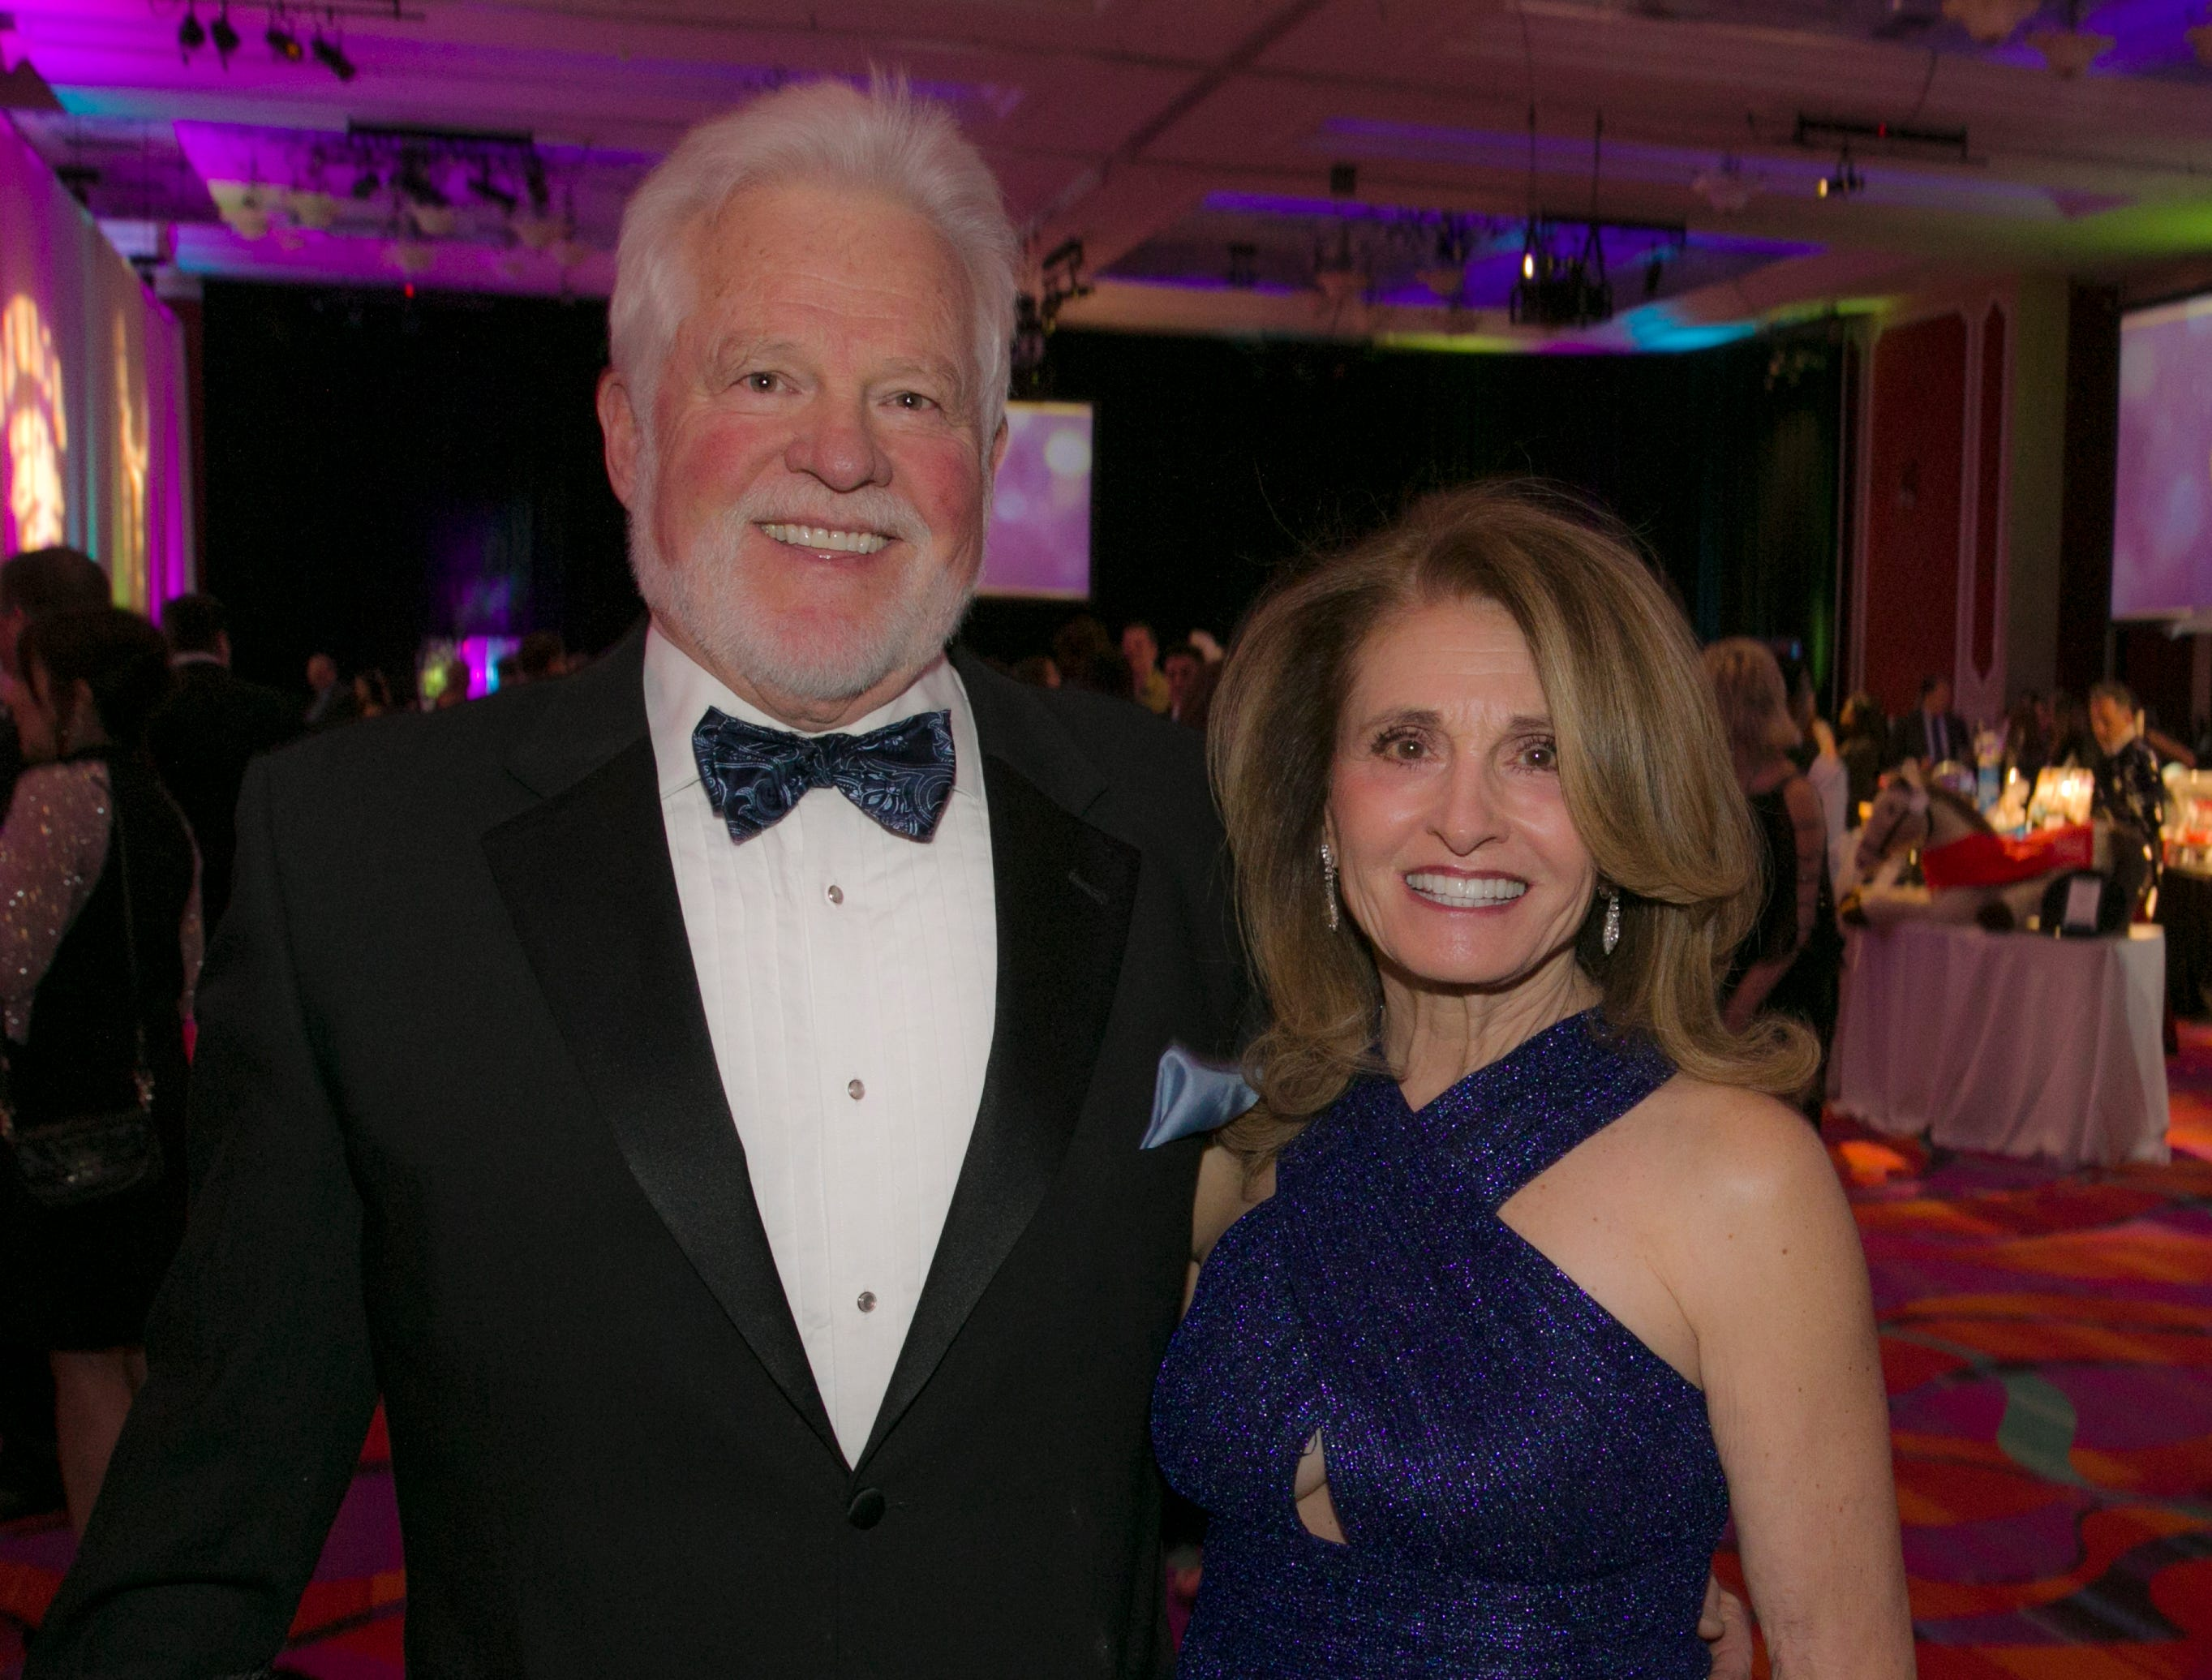 Kent and Kimberly Wood during the 10th Annual Blue Tie Ball at the Peppermill Resort Spa Casino in Reno, NV on Friday night, Feb. 1, 2019.